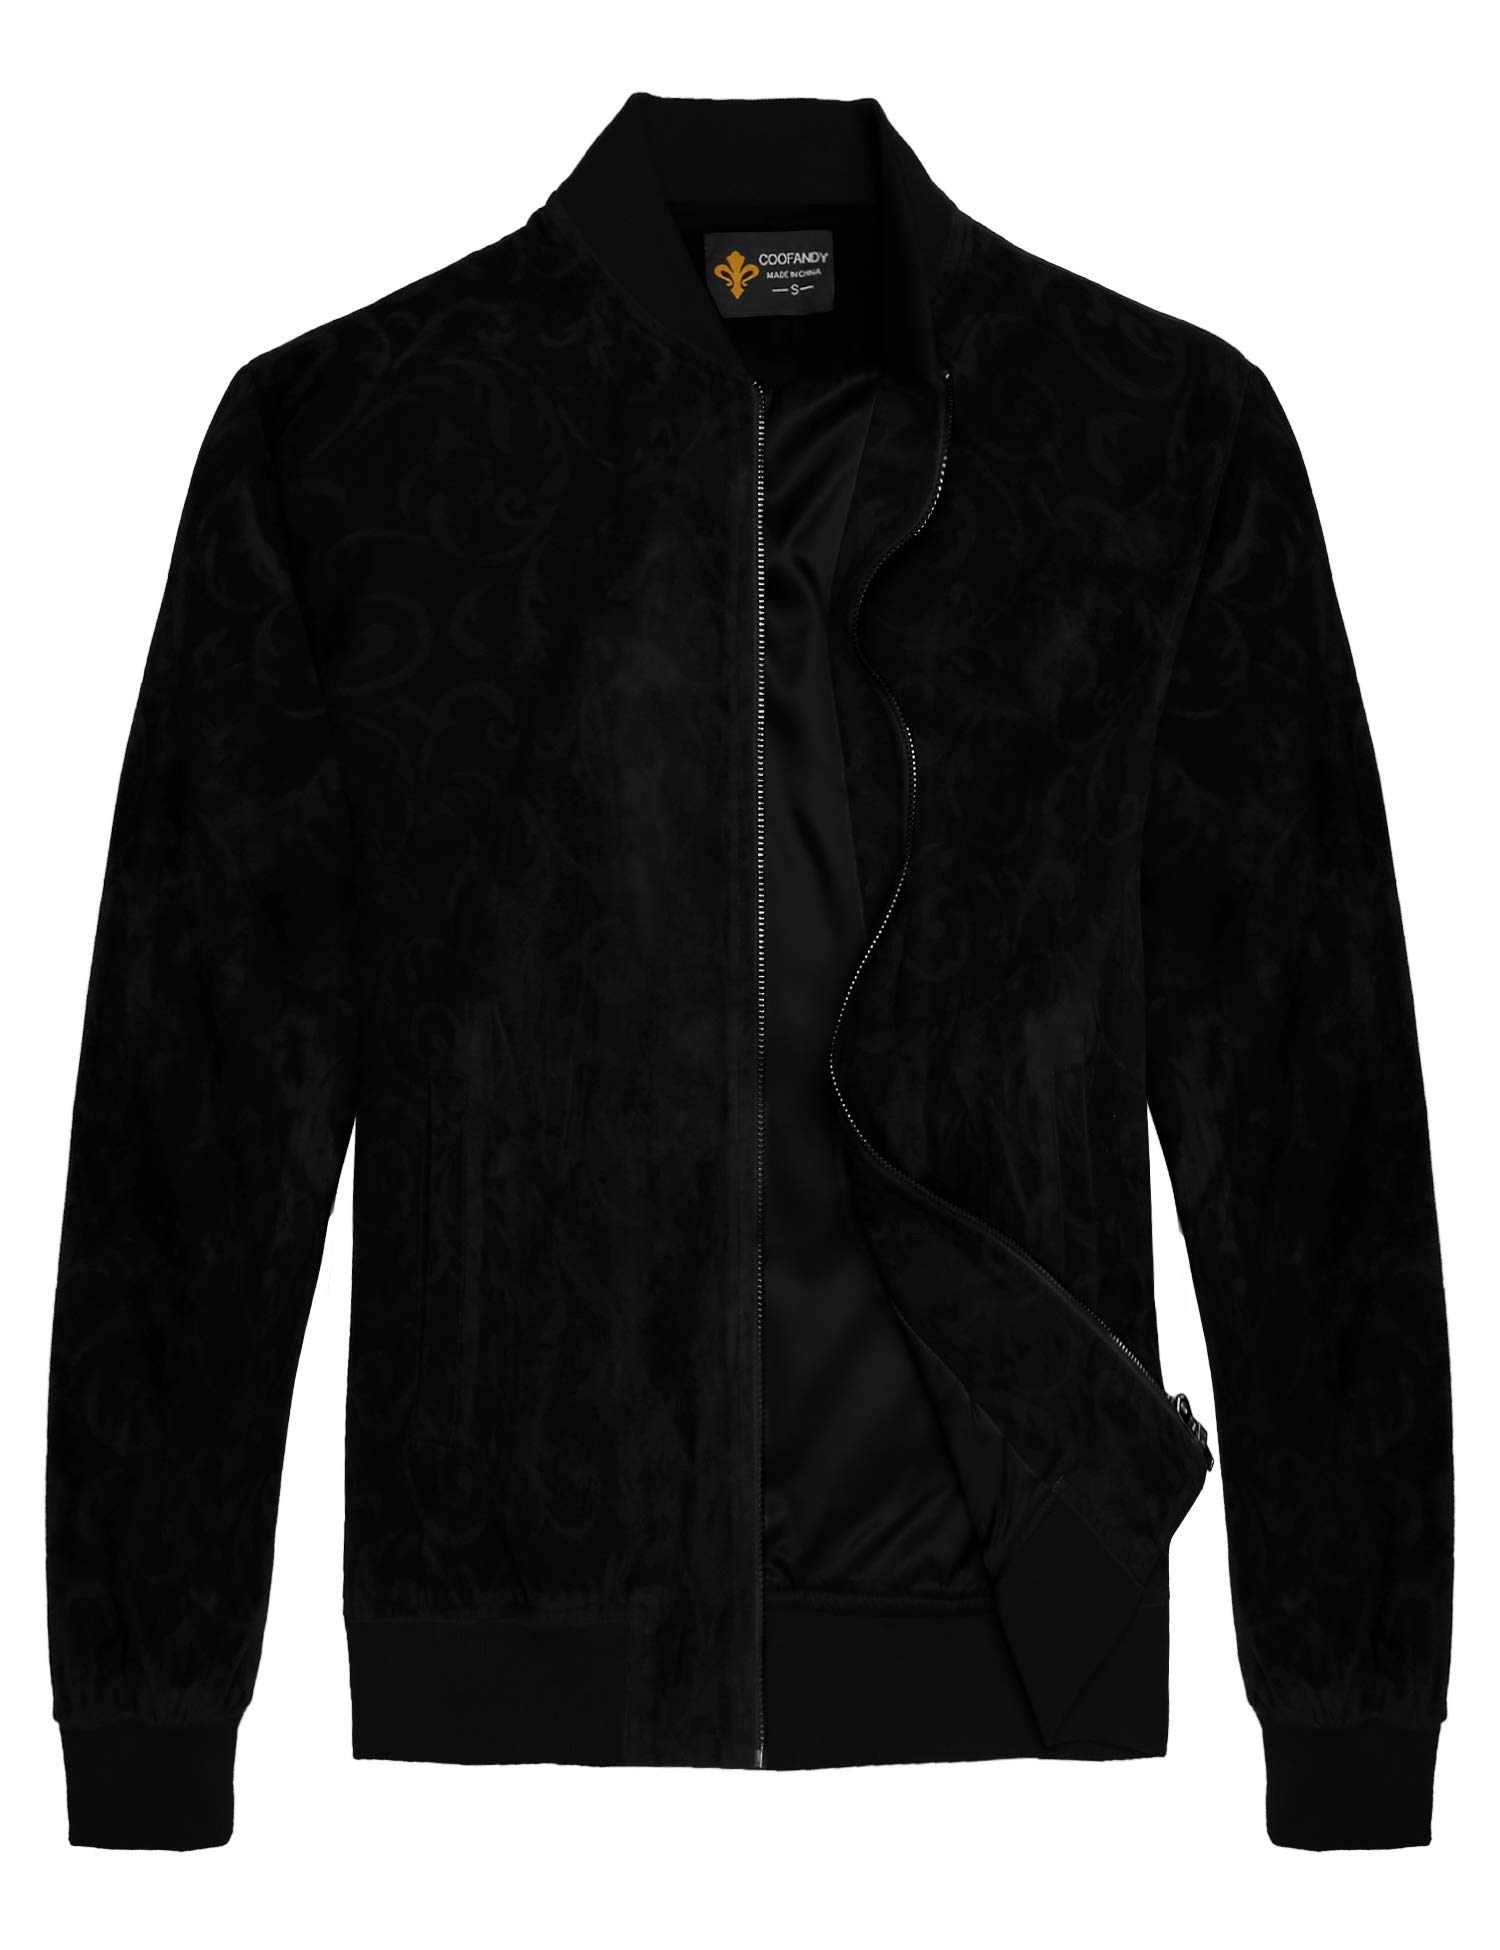 COOFANDY Mens Floral Suede Bomber Leather Jacket Casual Varsity Baseball Coat,Black,Large by COOFANDY